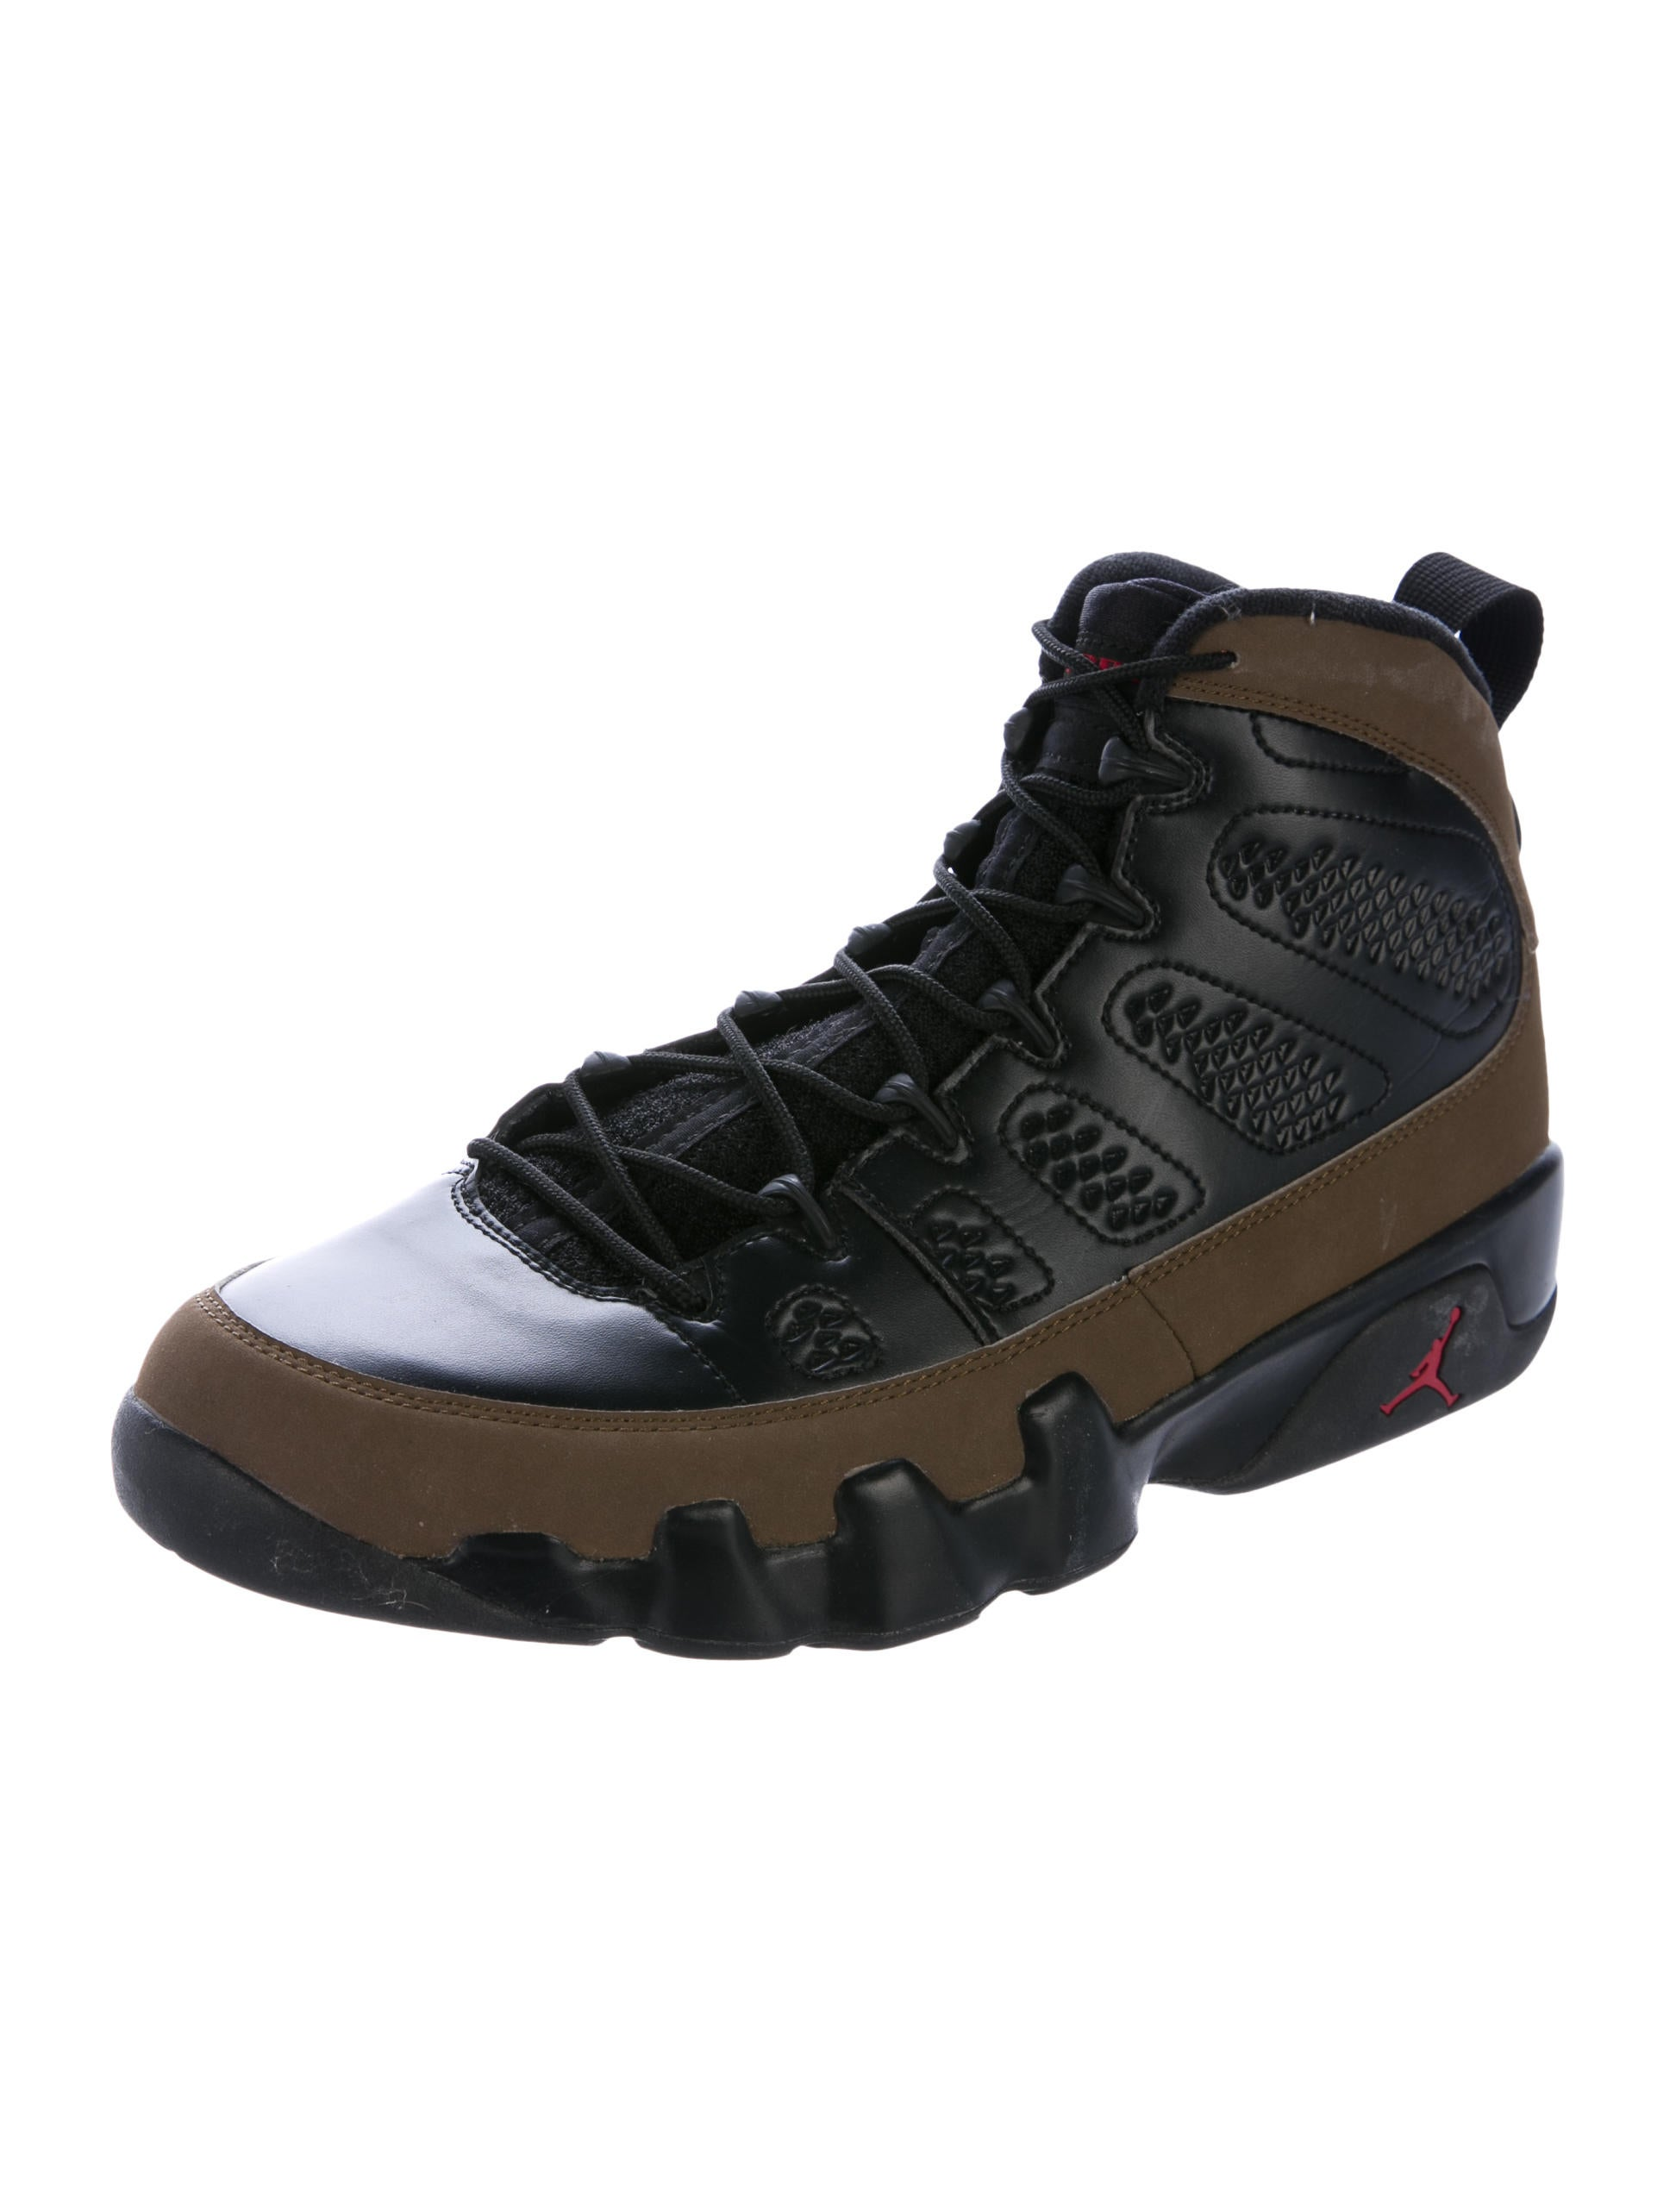 Nike Air Jordan 9 Retro Olive Sneakers Shoes